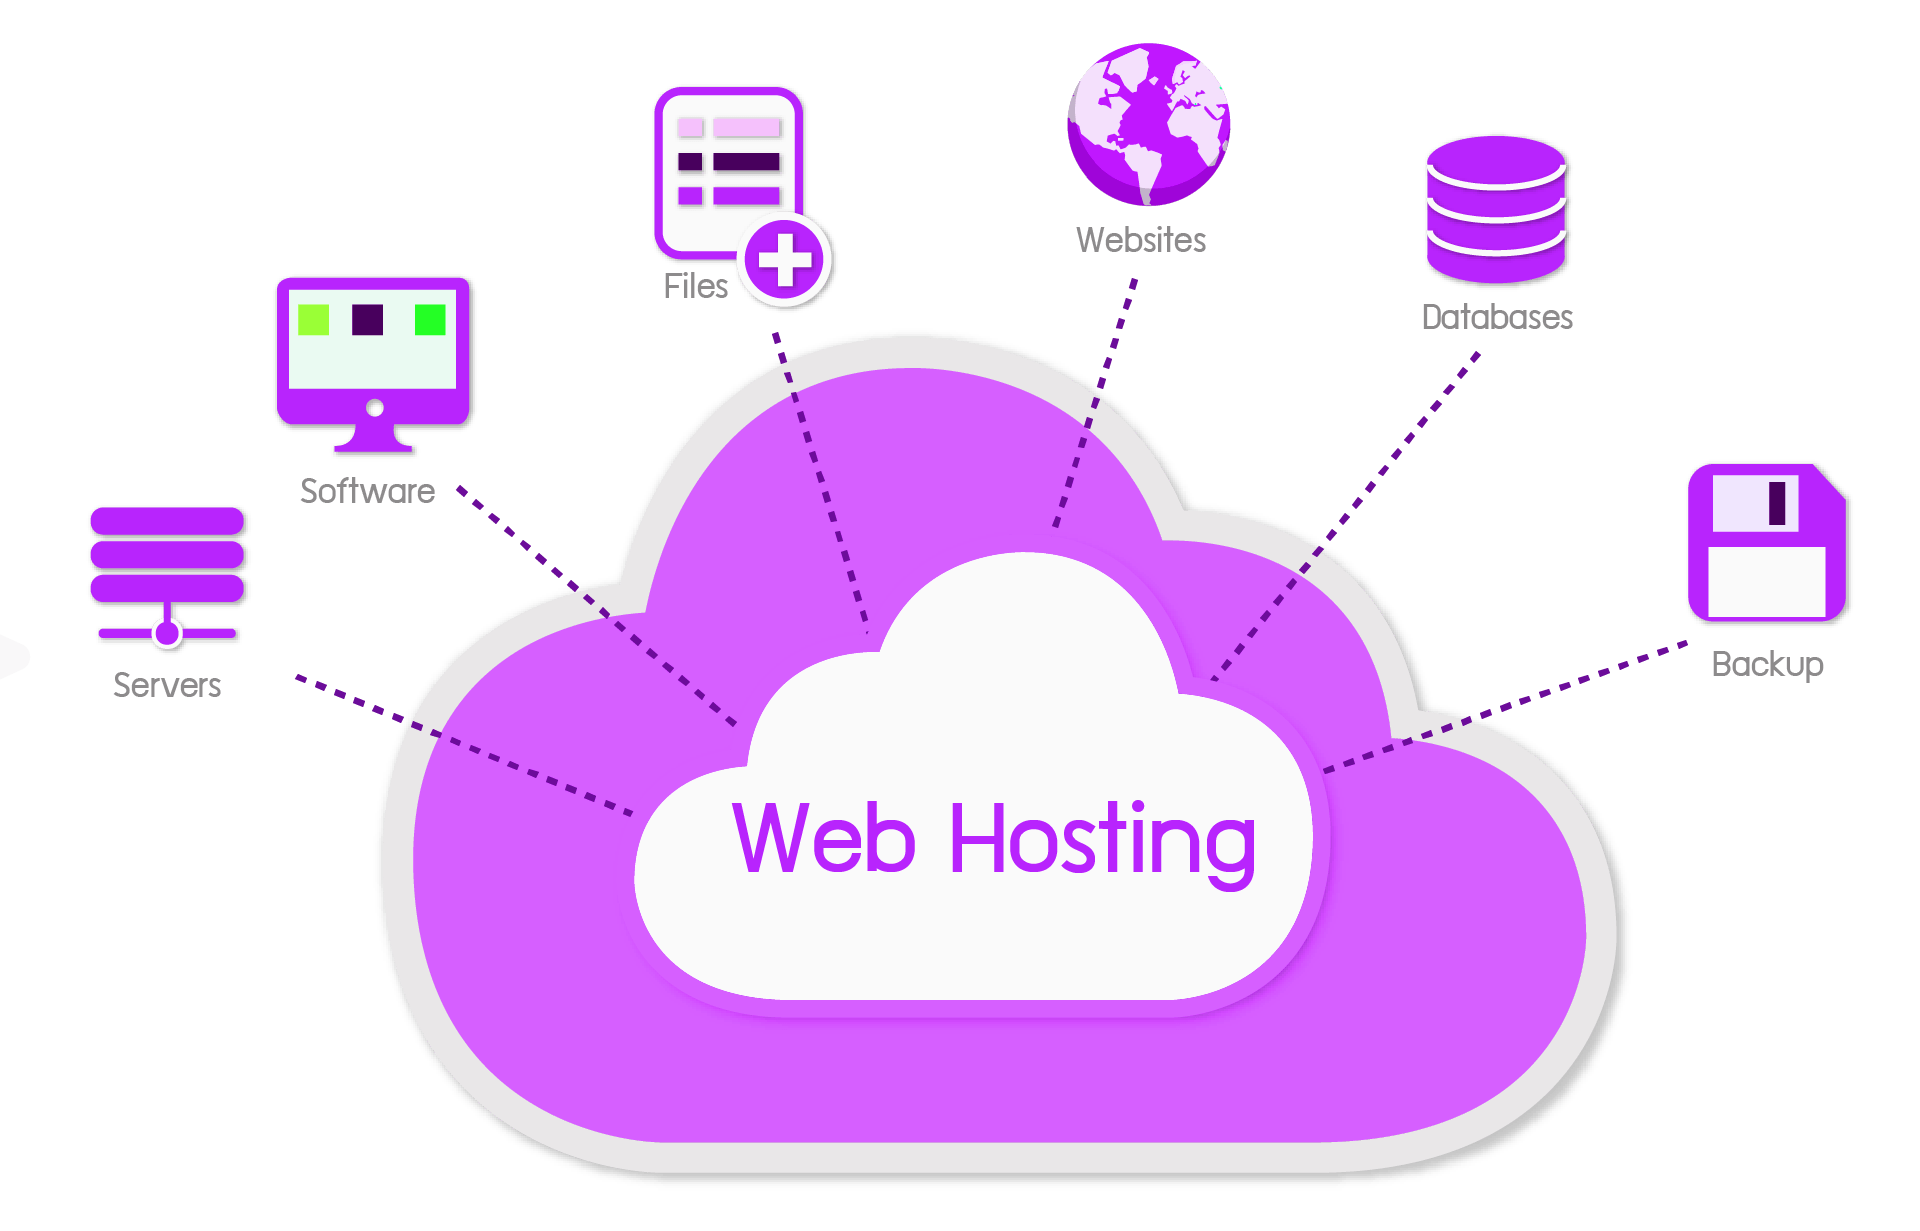 Reasons to Purchase Web Hosting: Reliable Web Hosting Services